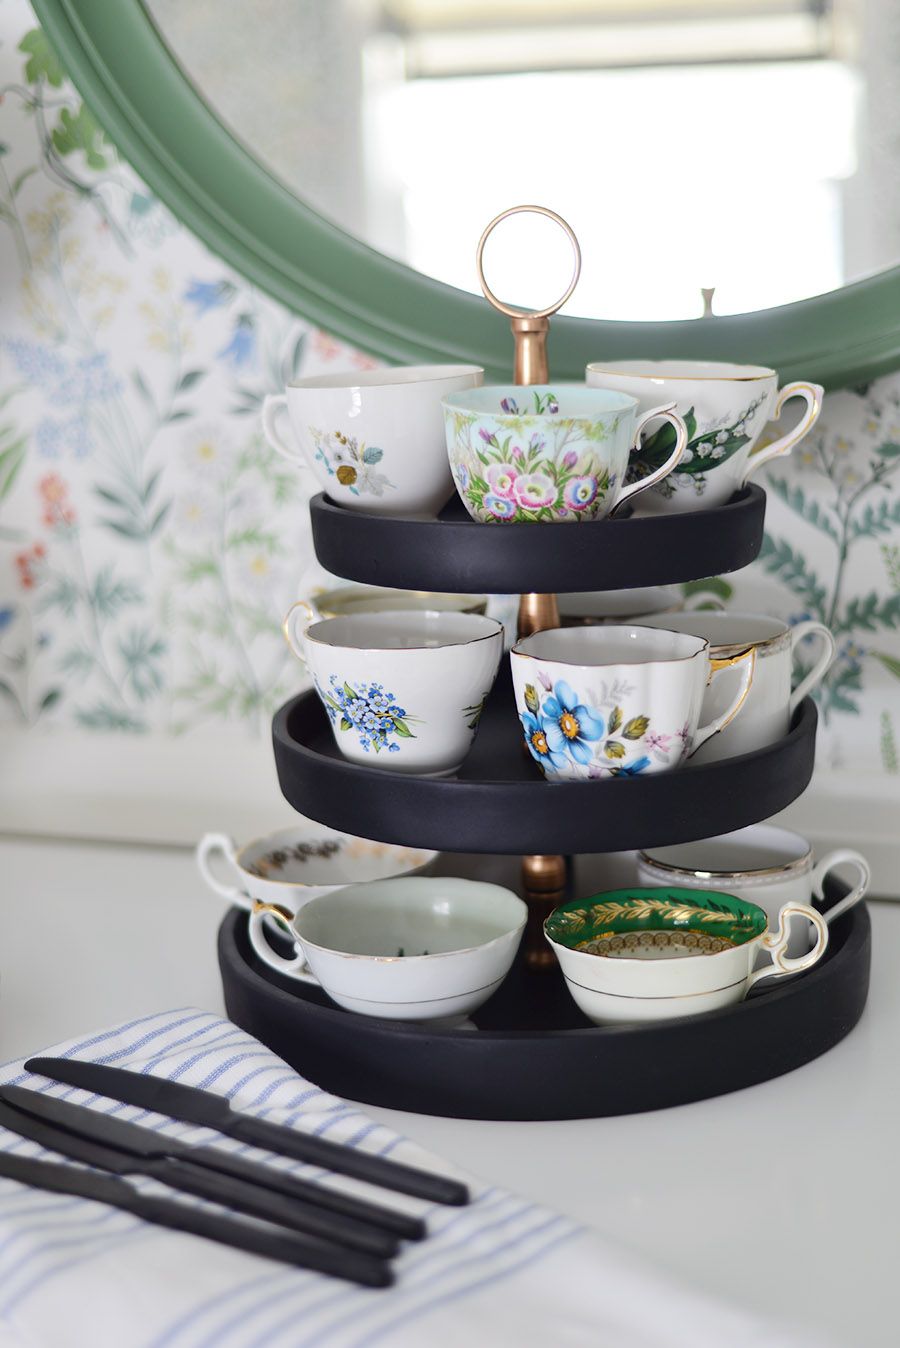 Borastapeter flora white wallpaper, green round mirror, buffet display, teacups on tiered tray